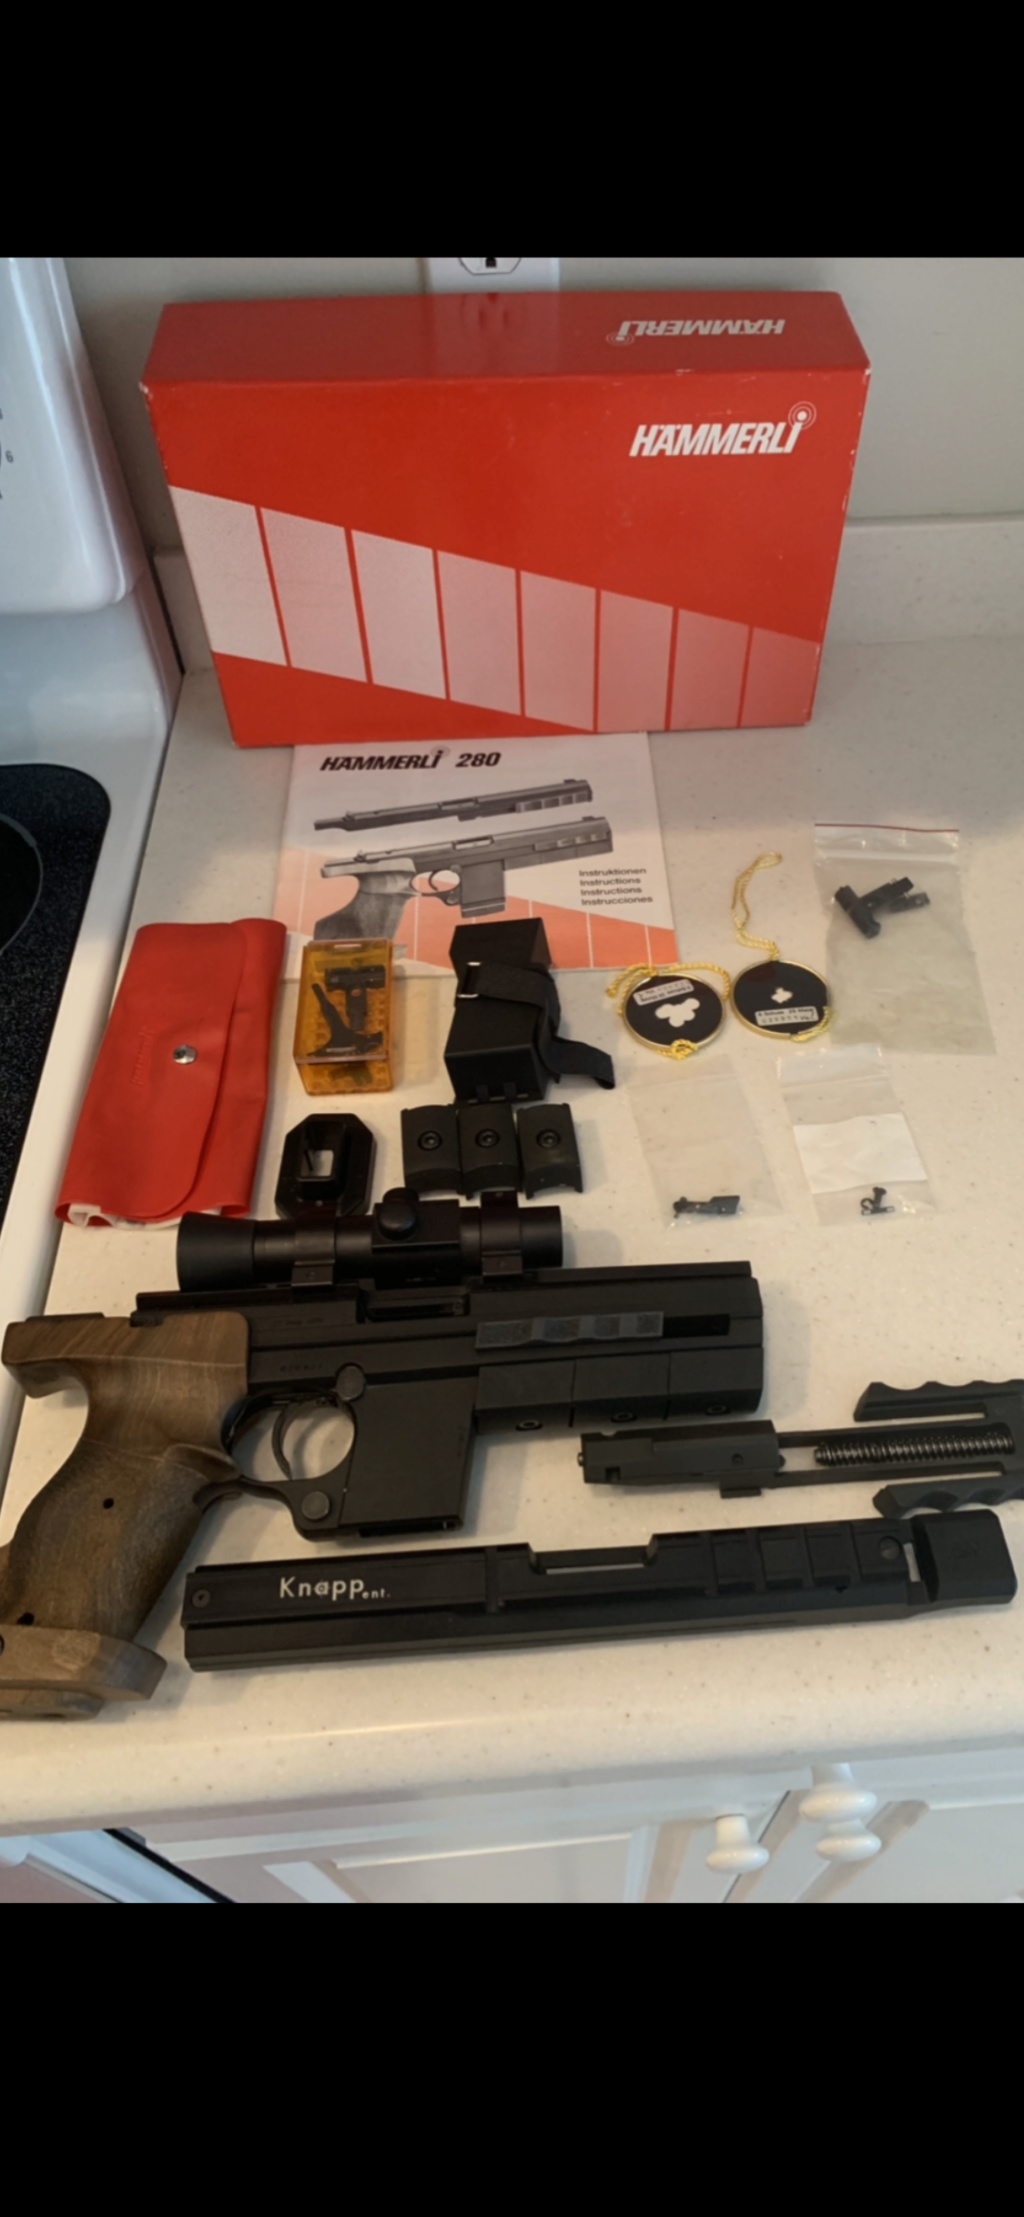 Hammerli 280 22lr with 32 conversion  A2bc8f10